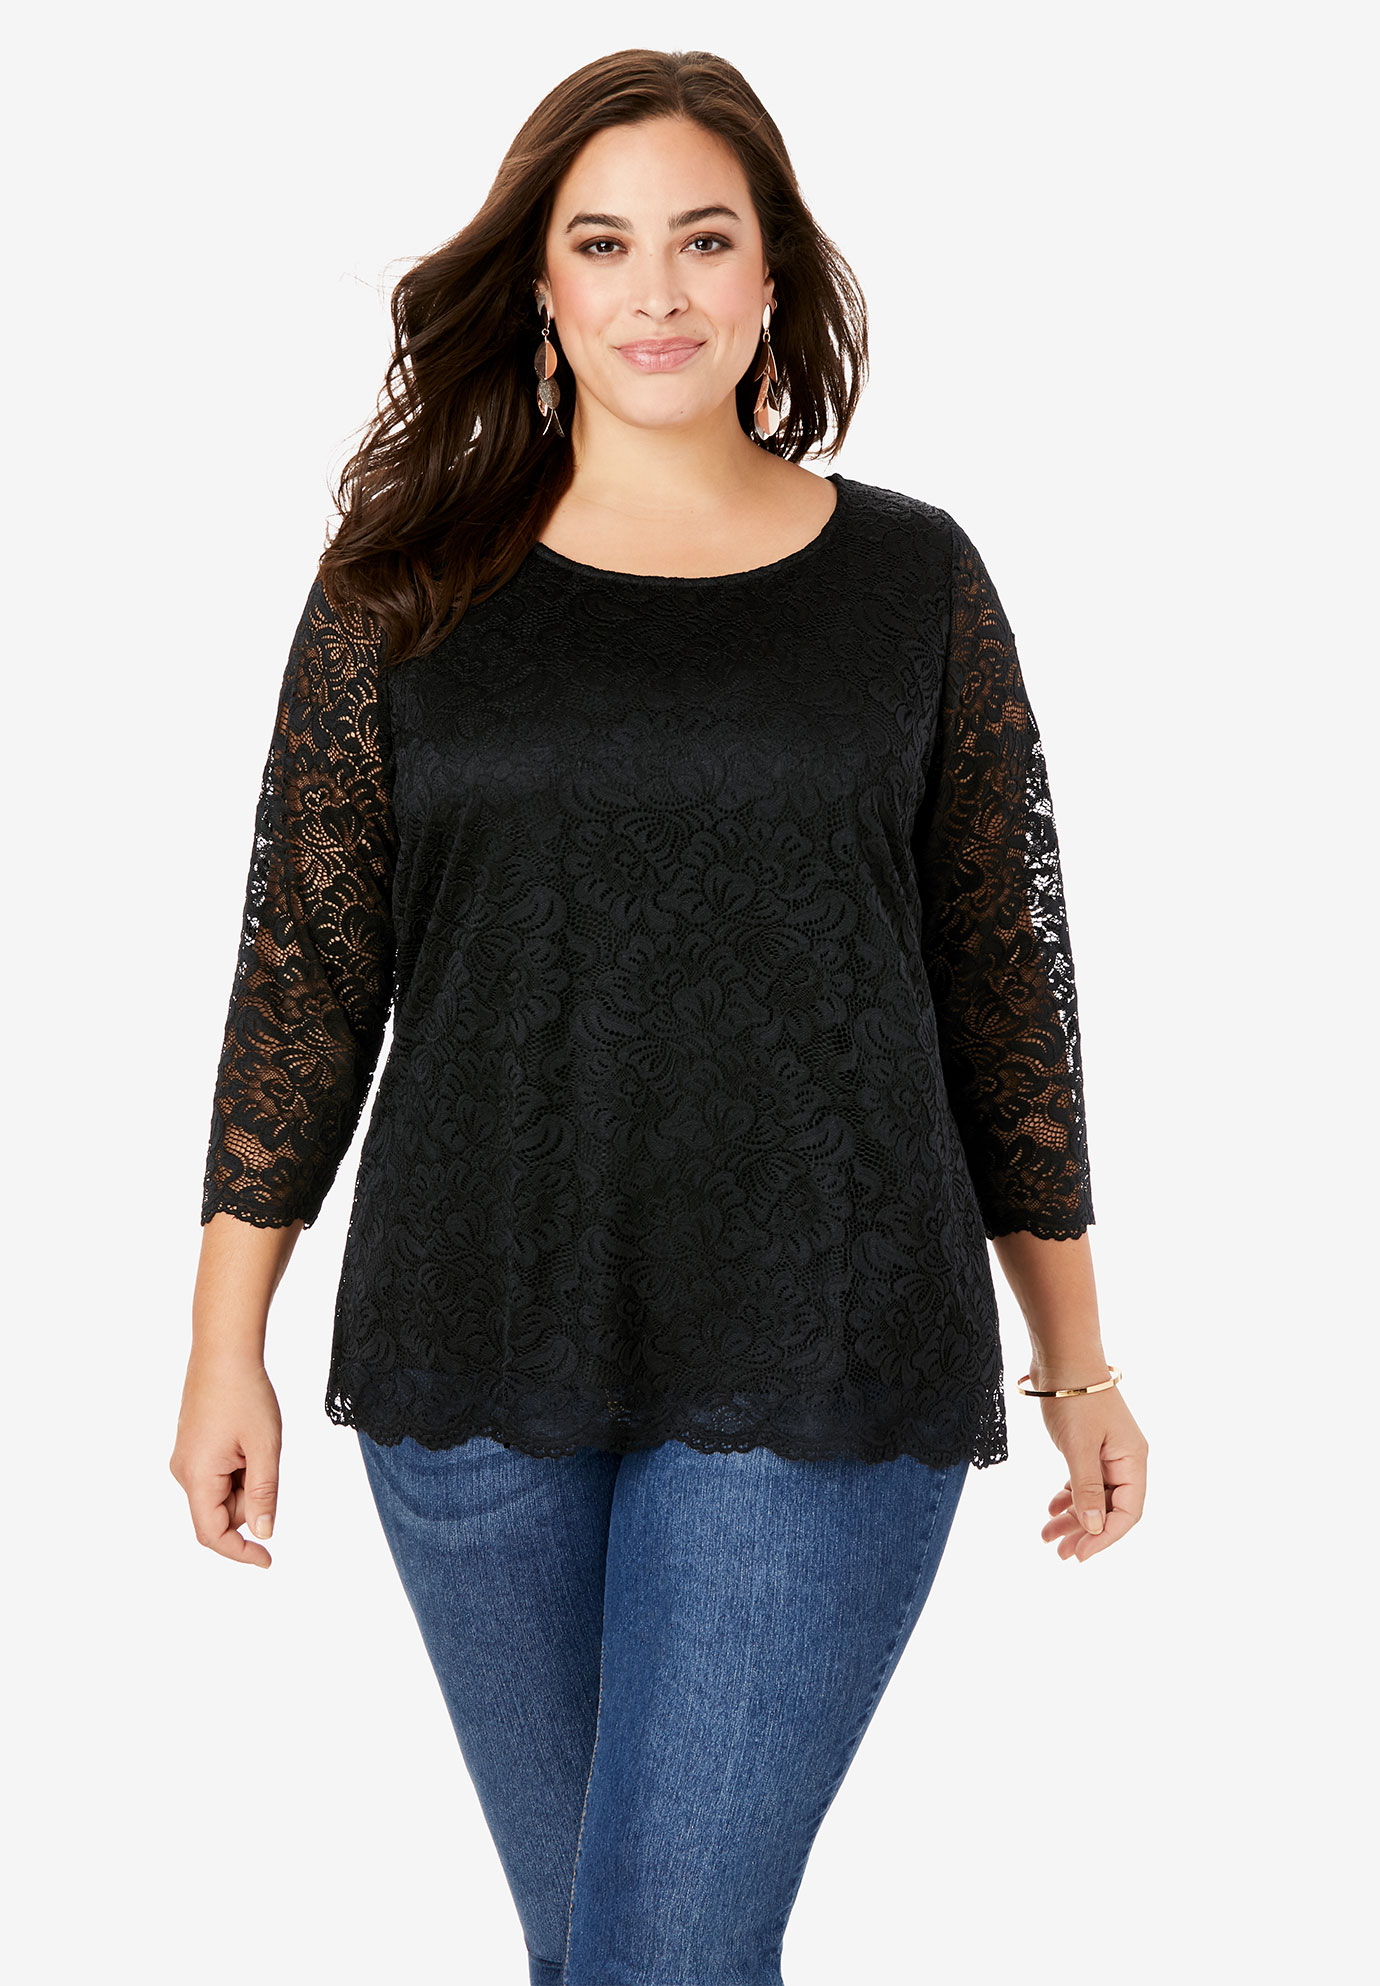 All-Over Lace Boatneck Tee with Illusion Sleeves,